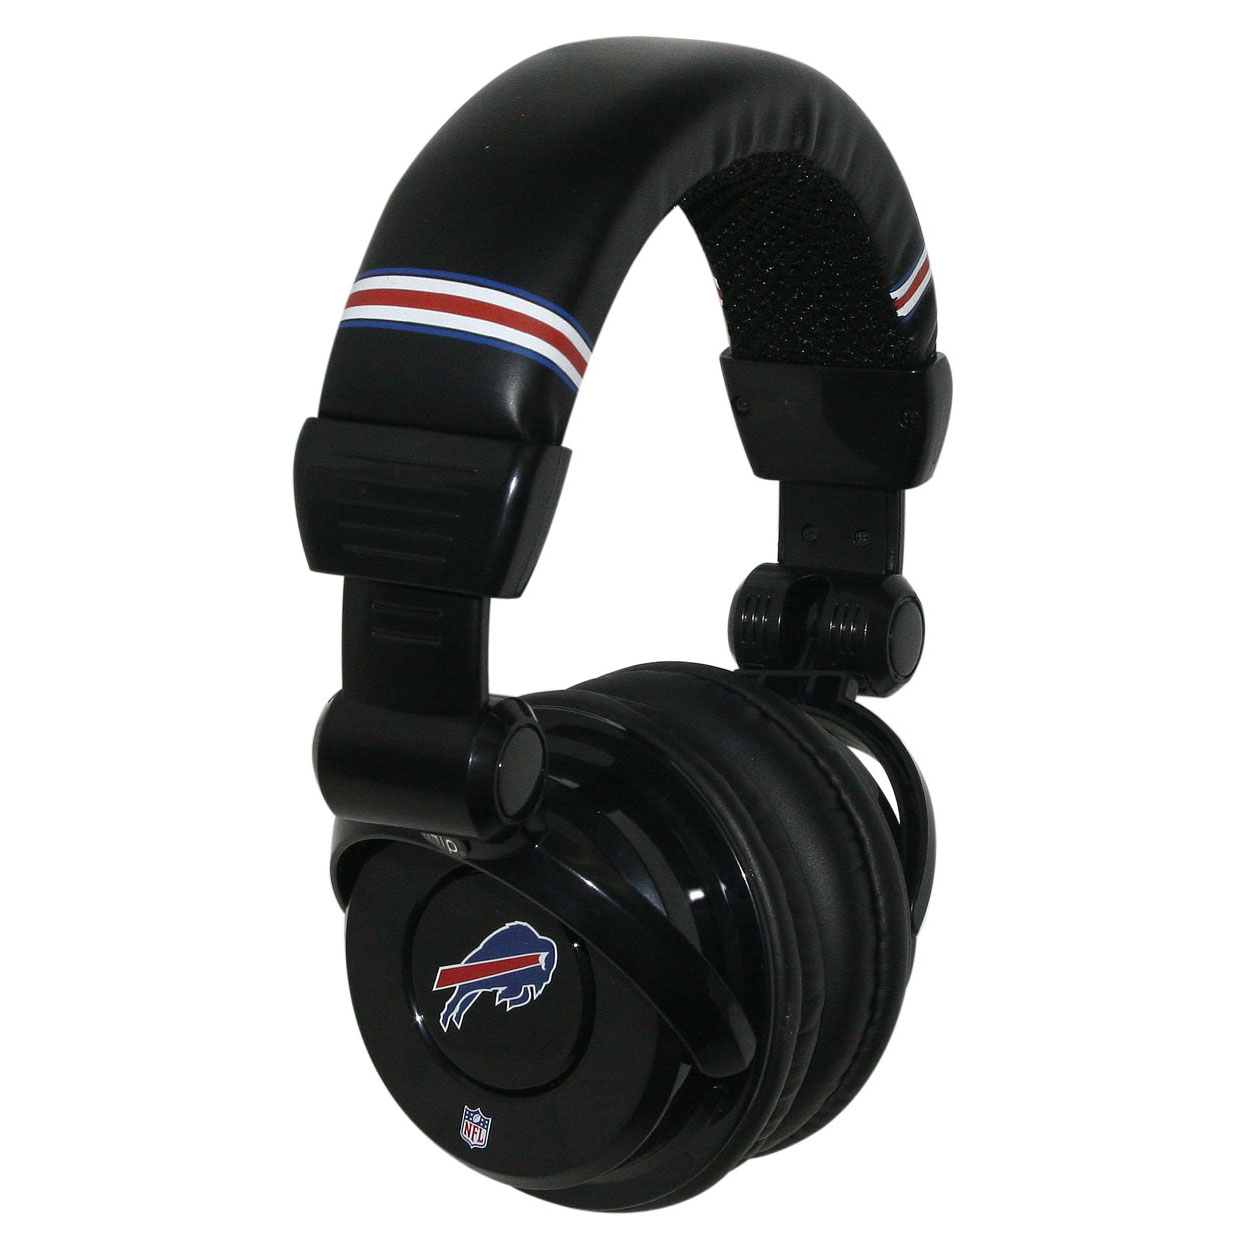 Ihip NFL Pro Dj Headphones With Microphone - Buffa